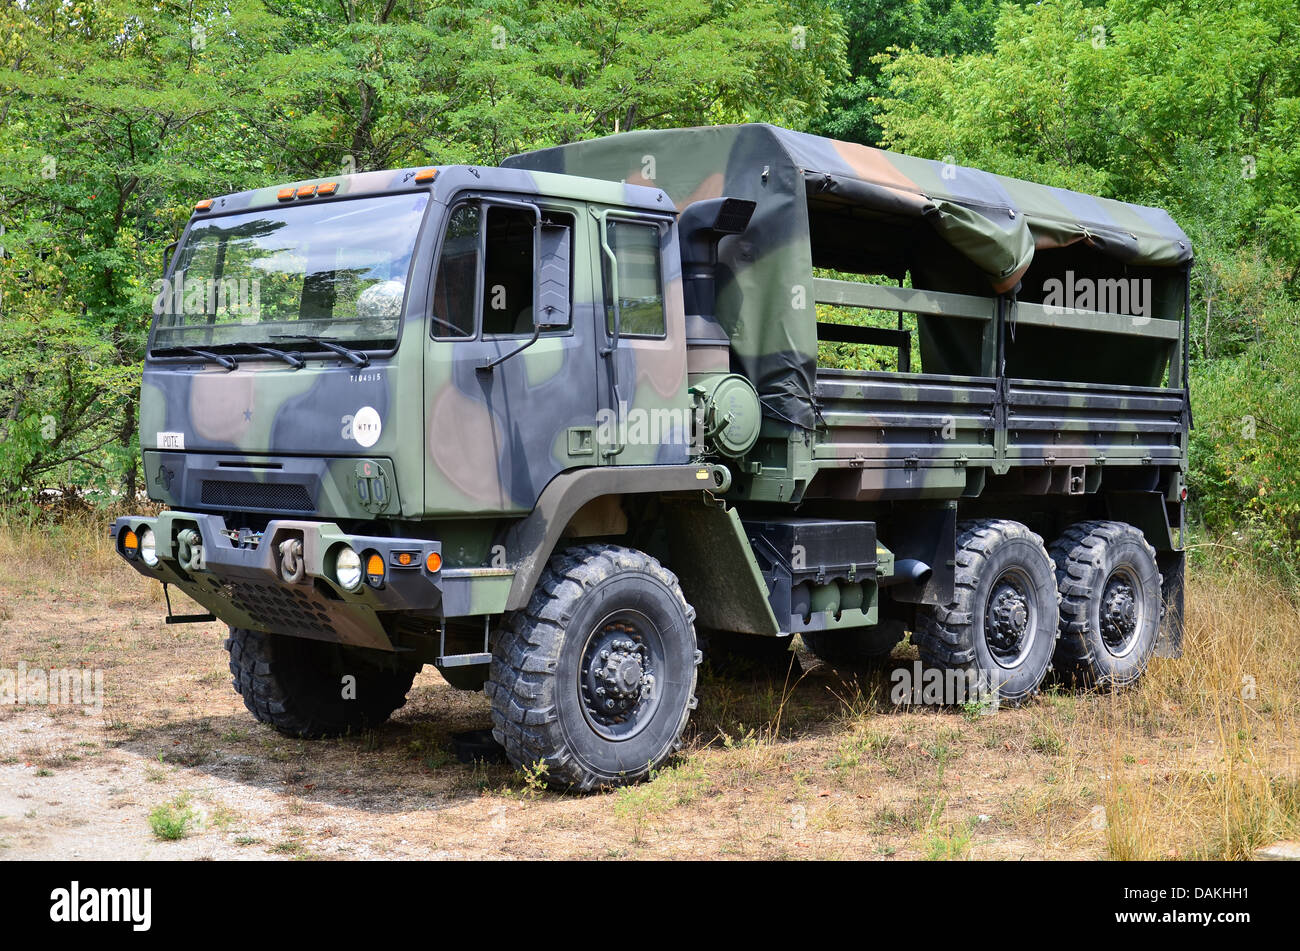 Military Personnel Carrier 2 1 2 Ton Truck In Camouflage